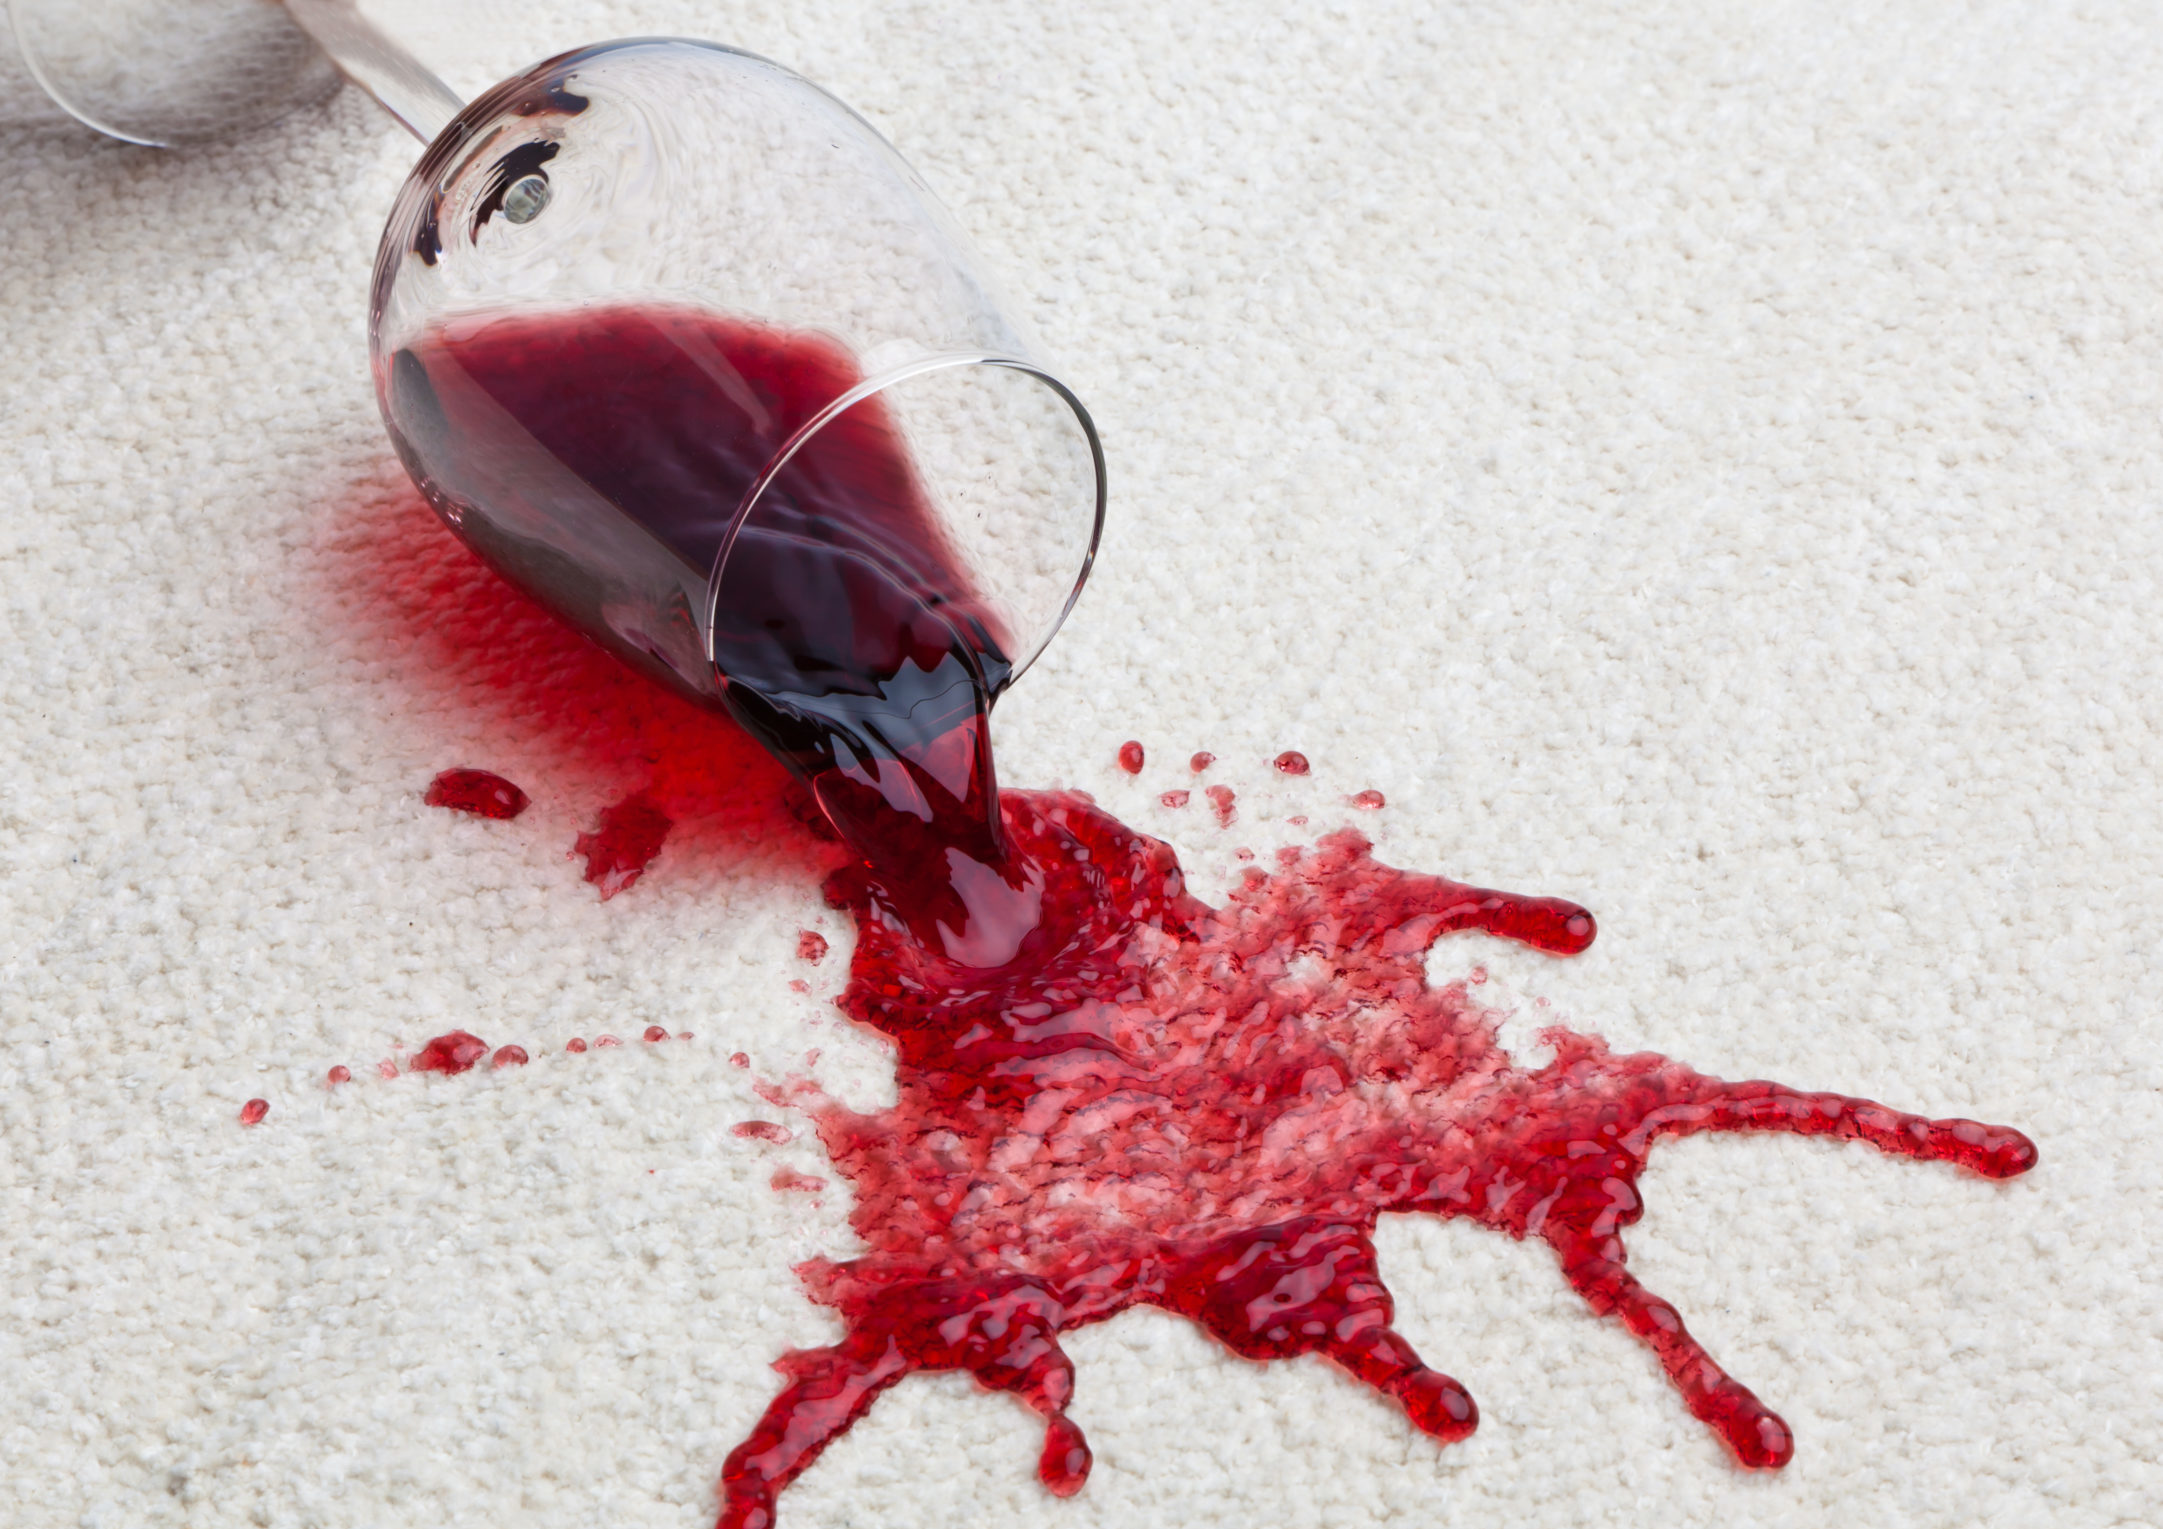 A glass of red wine spilling onto a clean white carpet